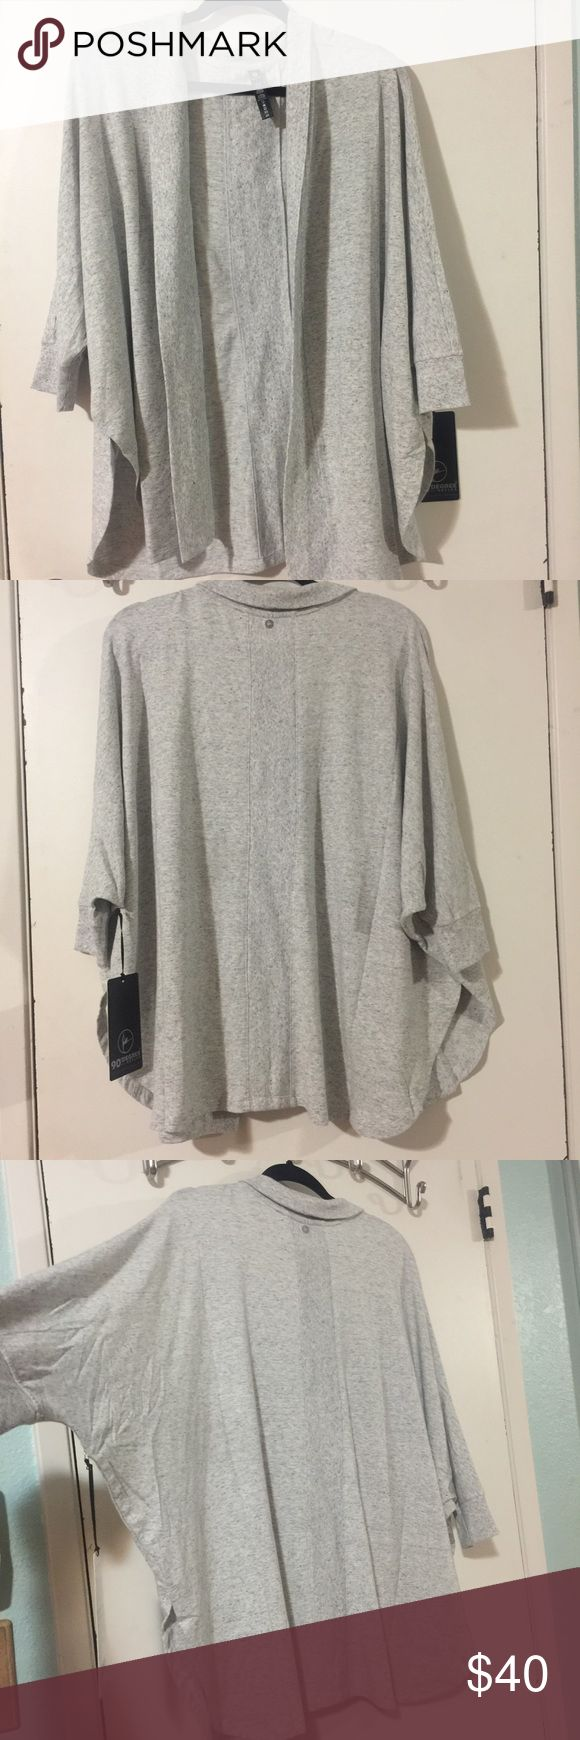 NWT - Heather Grey Sweater (L) For those chilly mornings or keeping you chic after the gym, this versatile sweater is suuuper soft and perfect for keeping you looking pulled together! 90 degrees Sweaters Cardigans